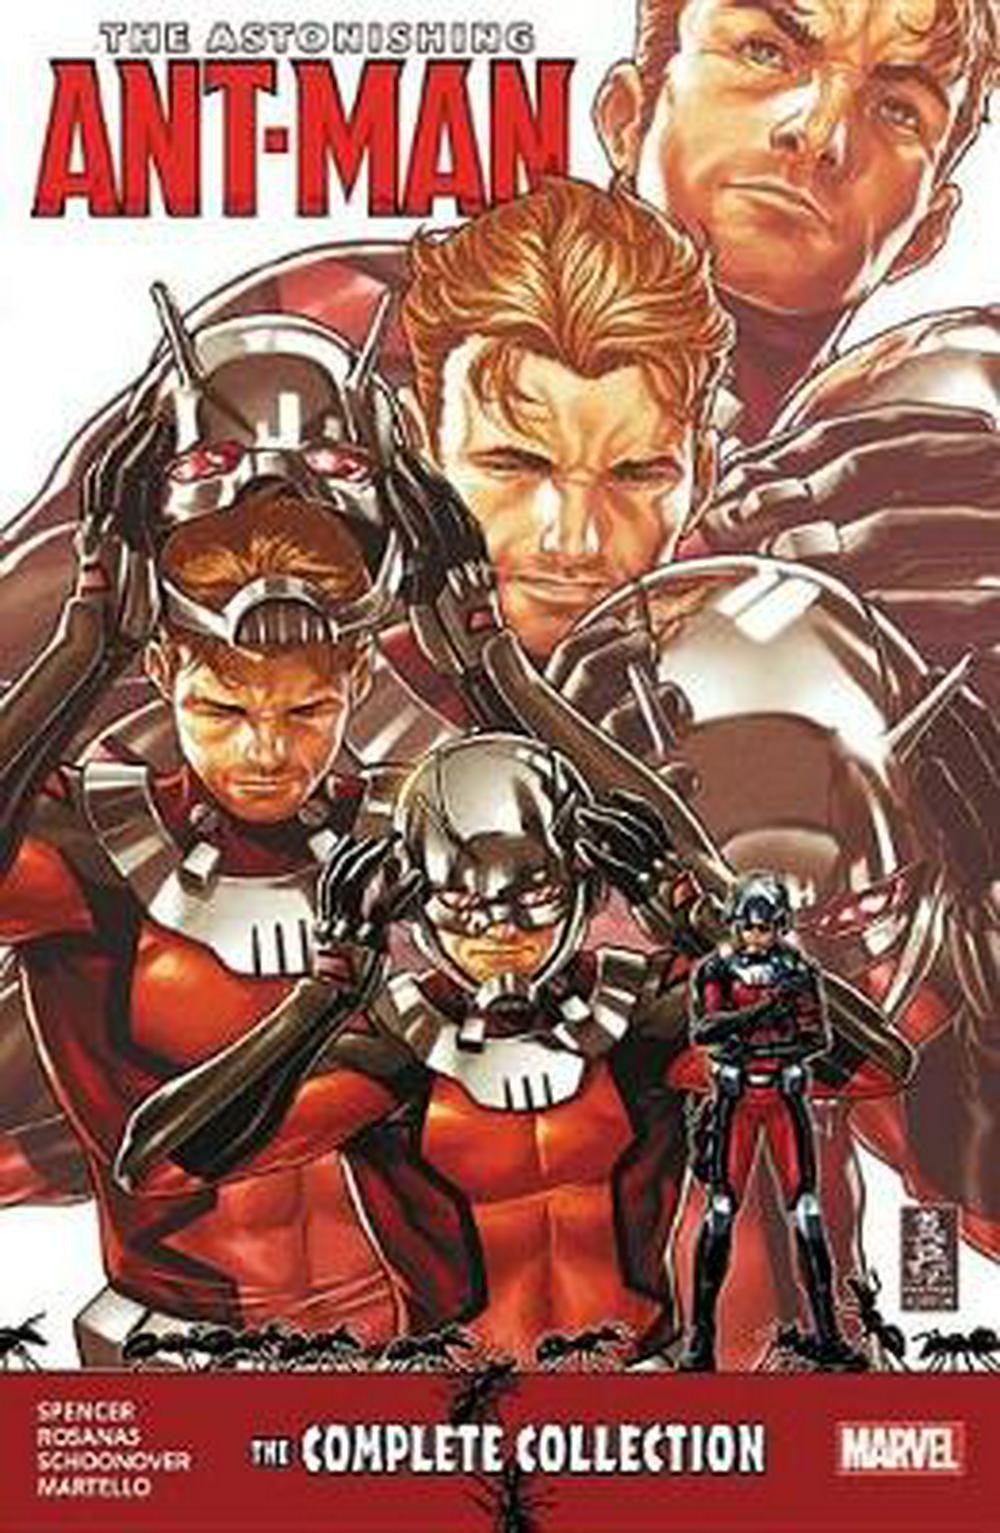 Astonishing Ant-Man: The Complete Collection by School of Postgraduate Medical Education and Department of Applied Social Studies Nick Spencer, ISBN: 9781302911324